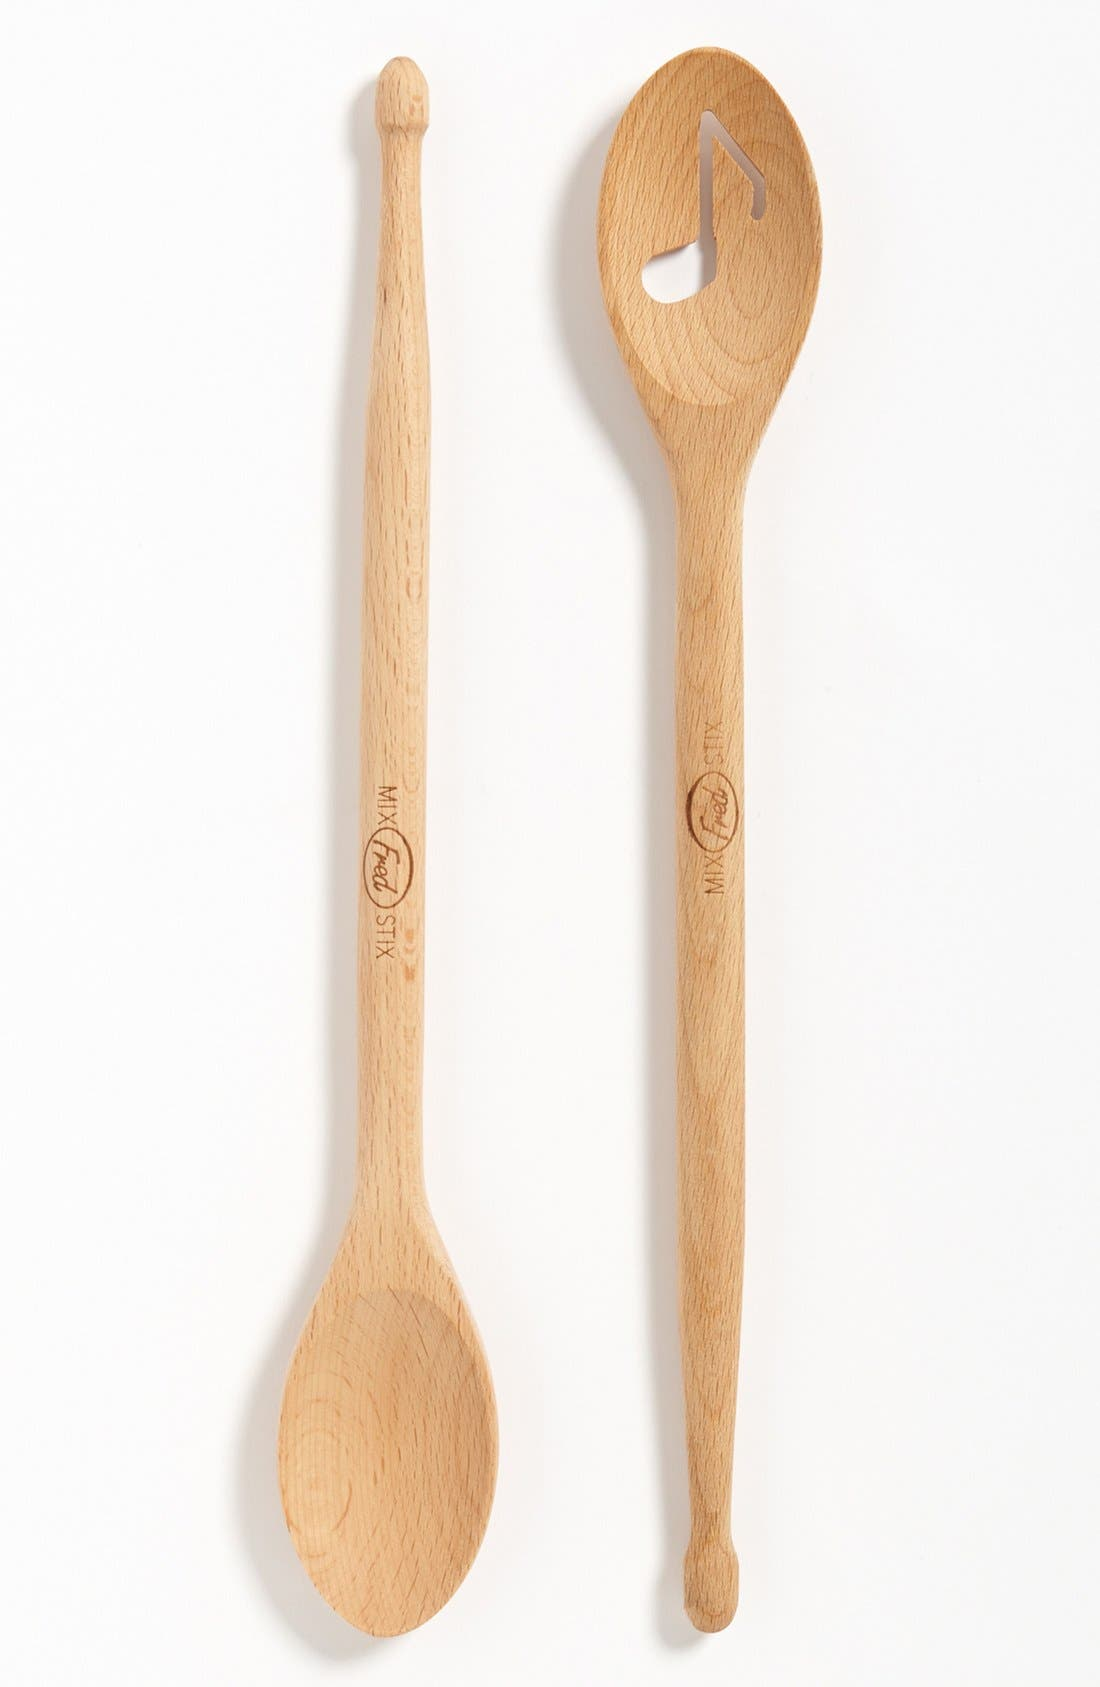 Main Image - Fred & Friends Drumstick Cooking Spoons